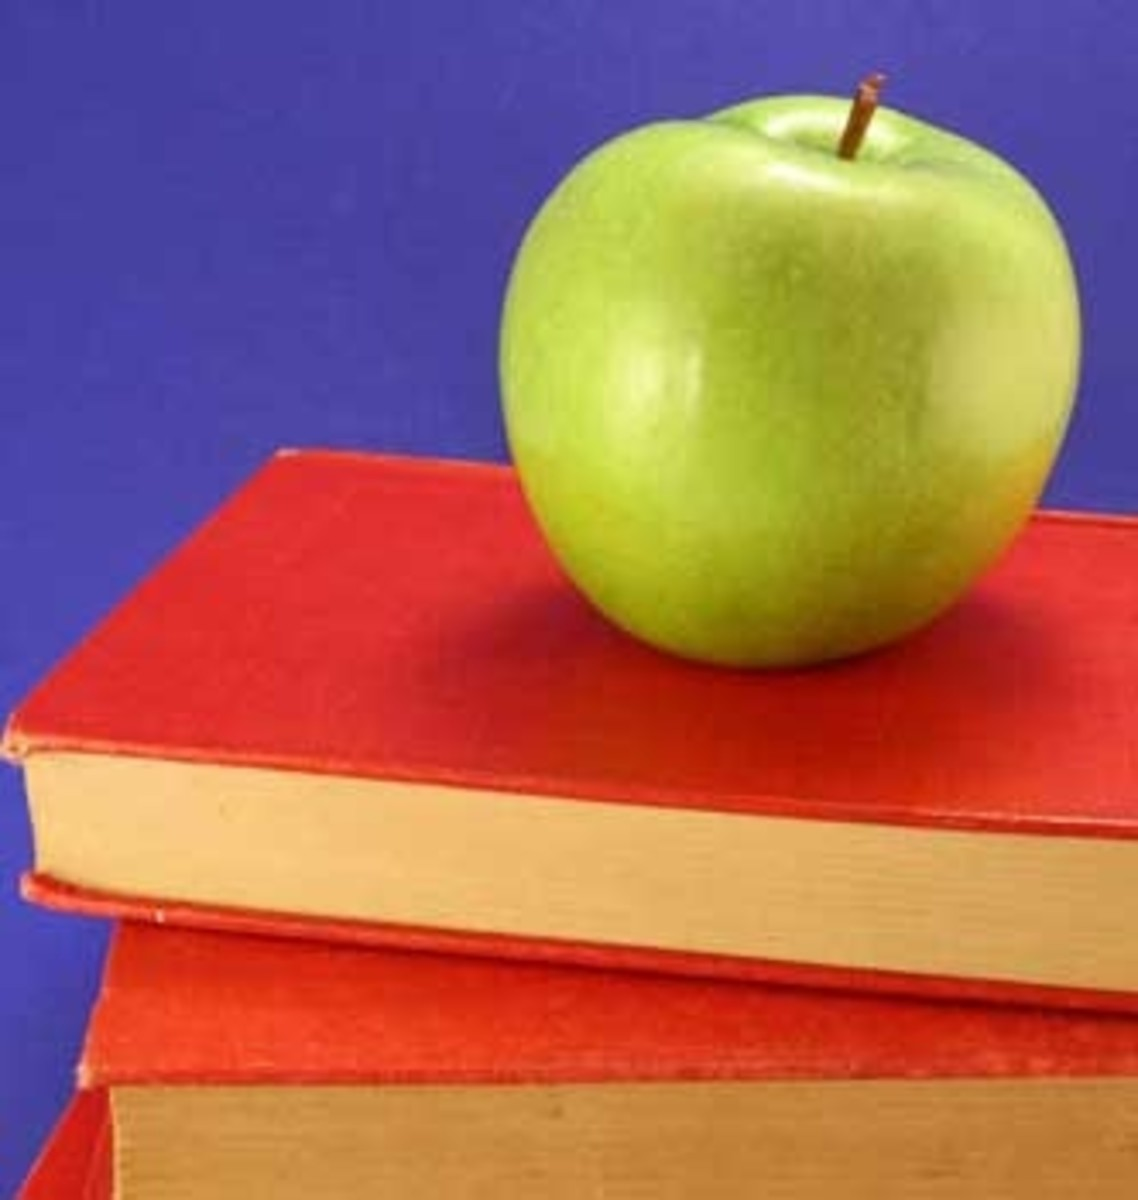 Classic classroom: apple and books